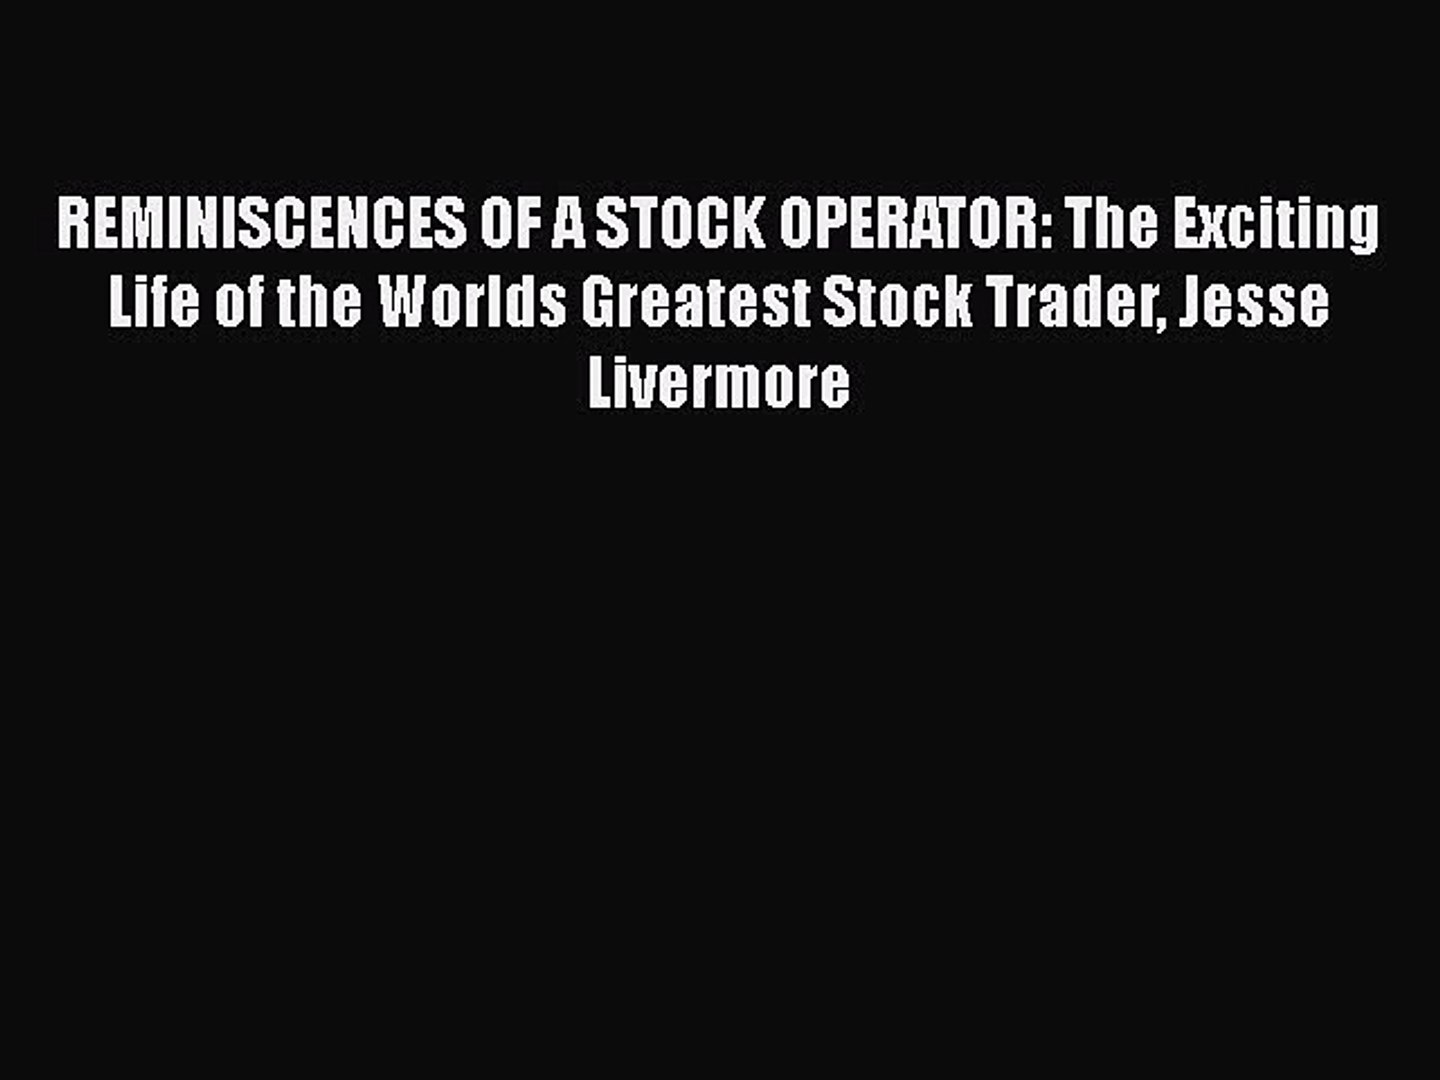 Read REMINISCENCES OF A STOCK OPERATOR: The Exciting Life of the Worlds Greatest Stock Trader